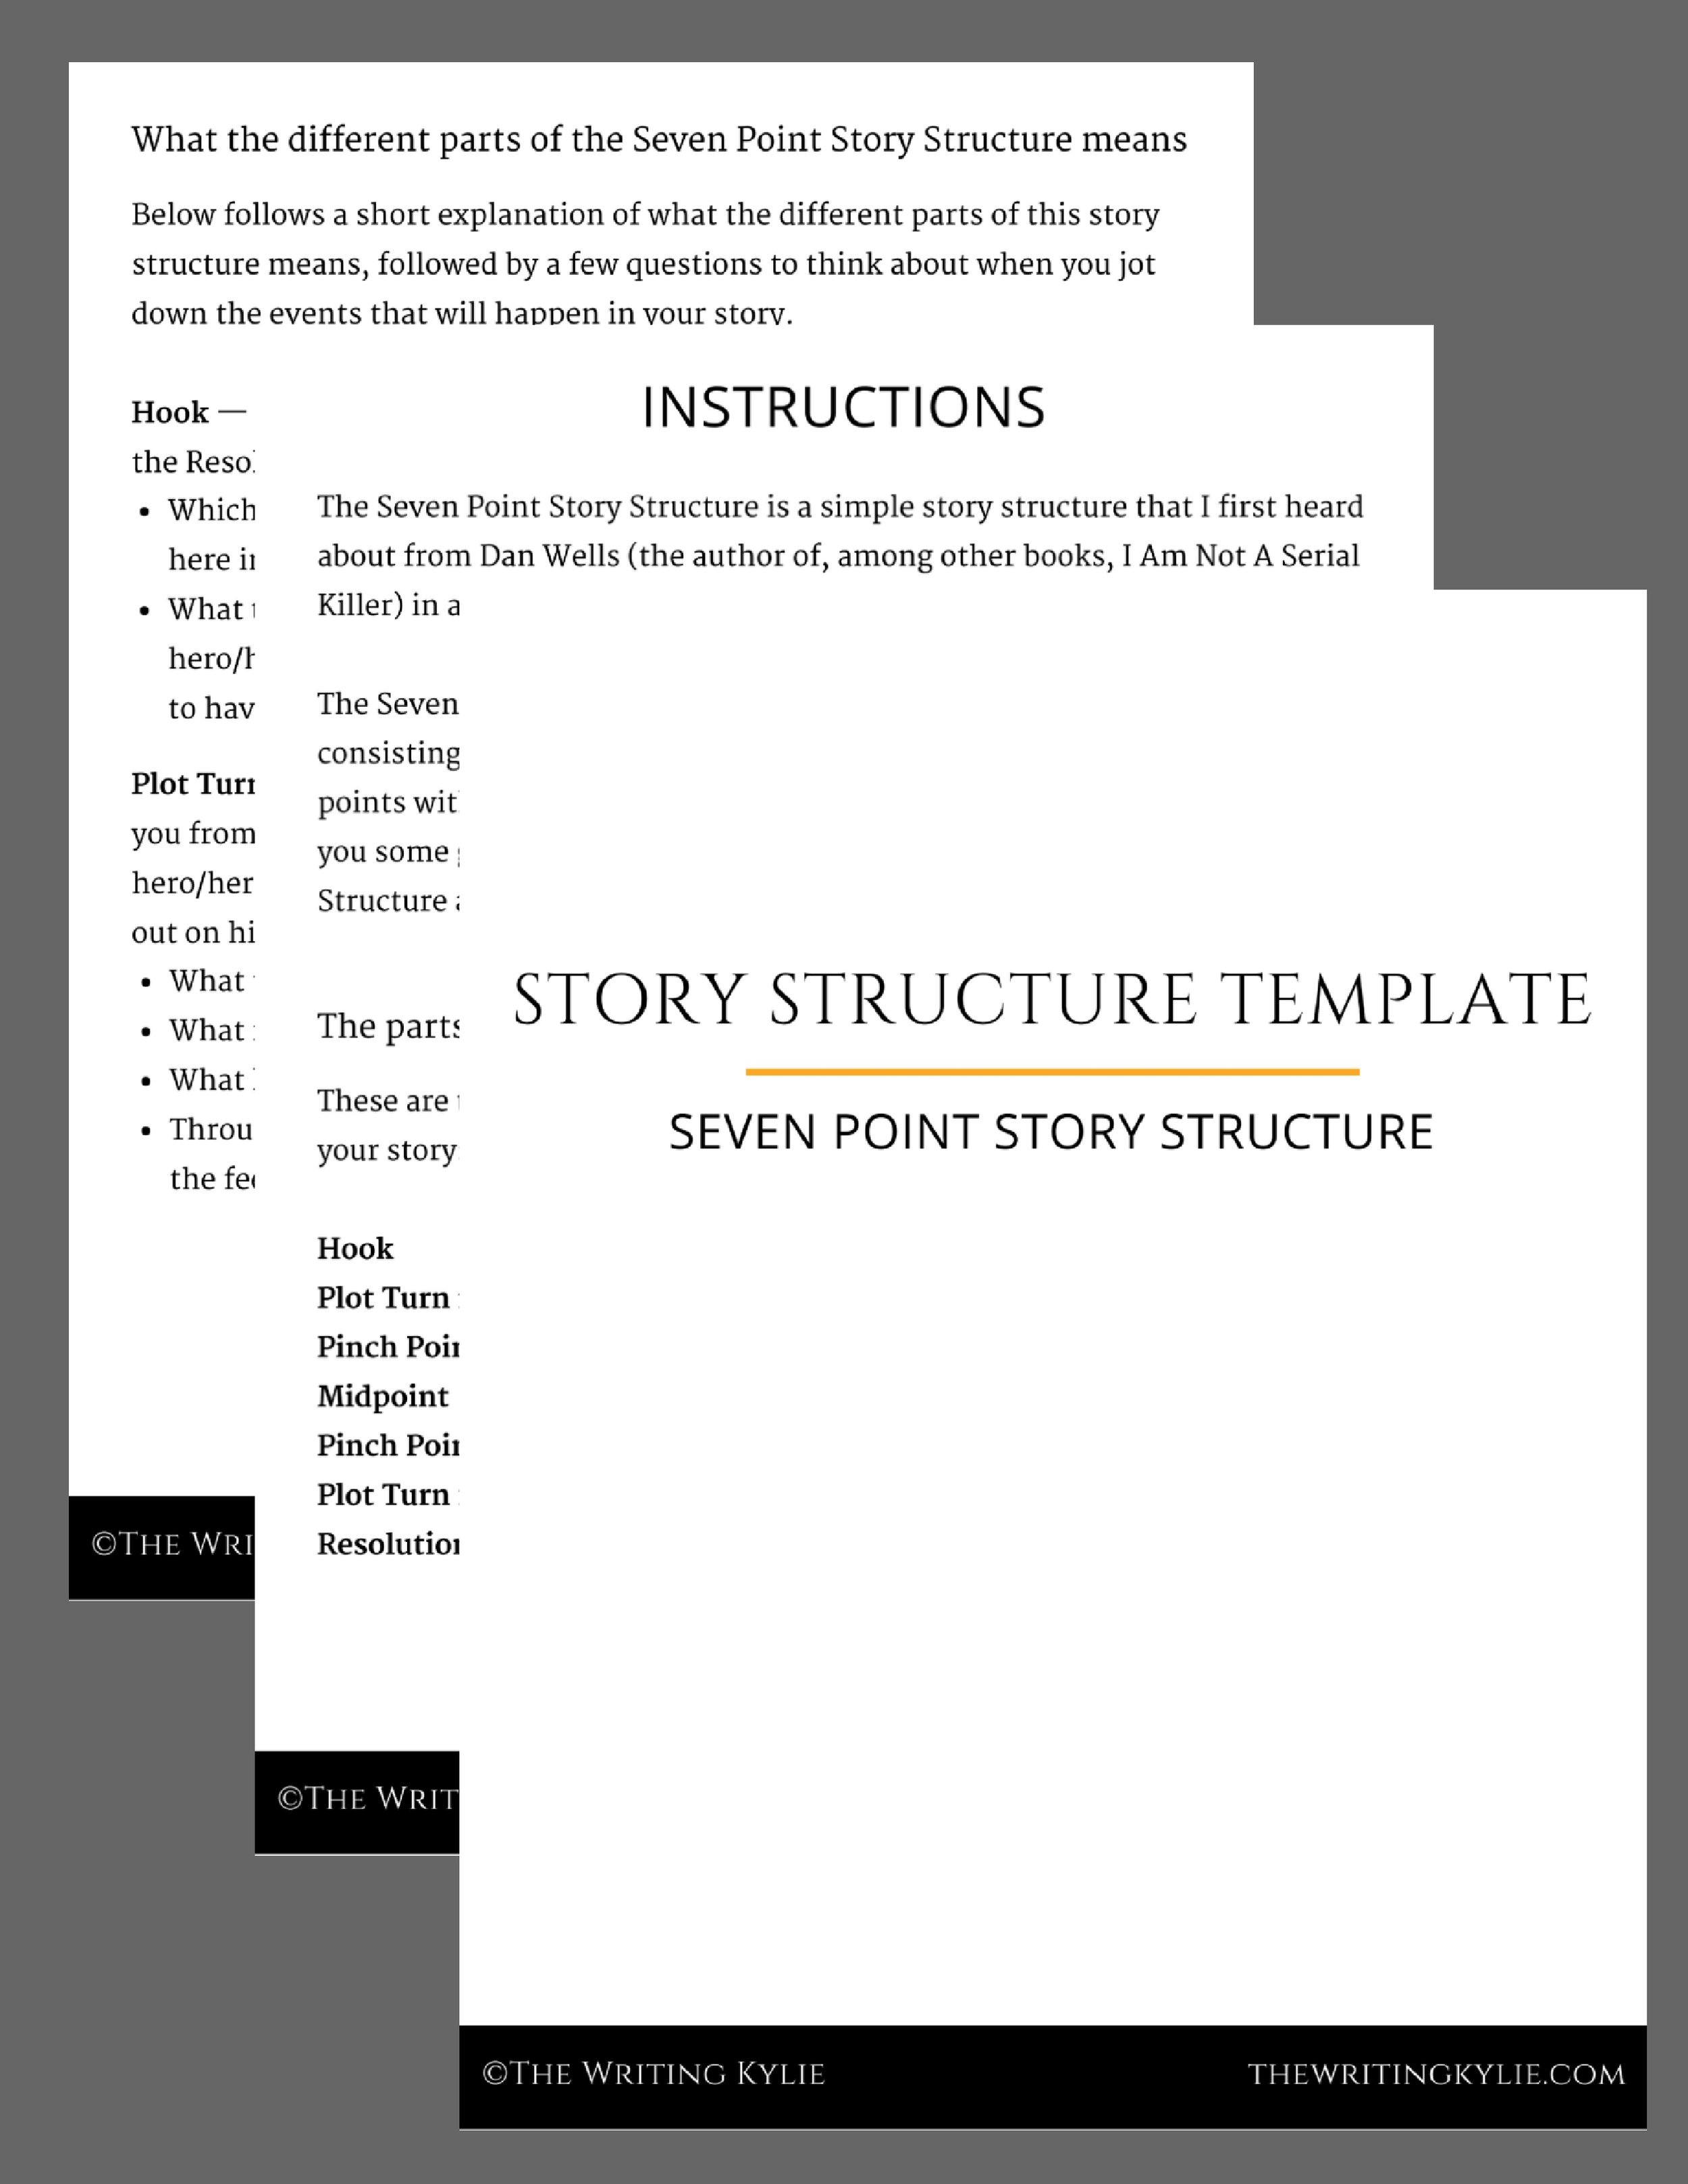 Seven Point Story Structure Template Worksheet.jpg